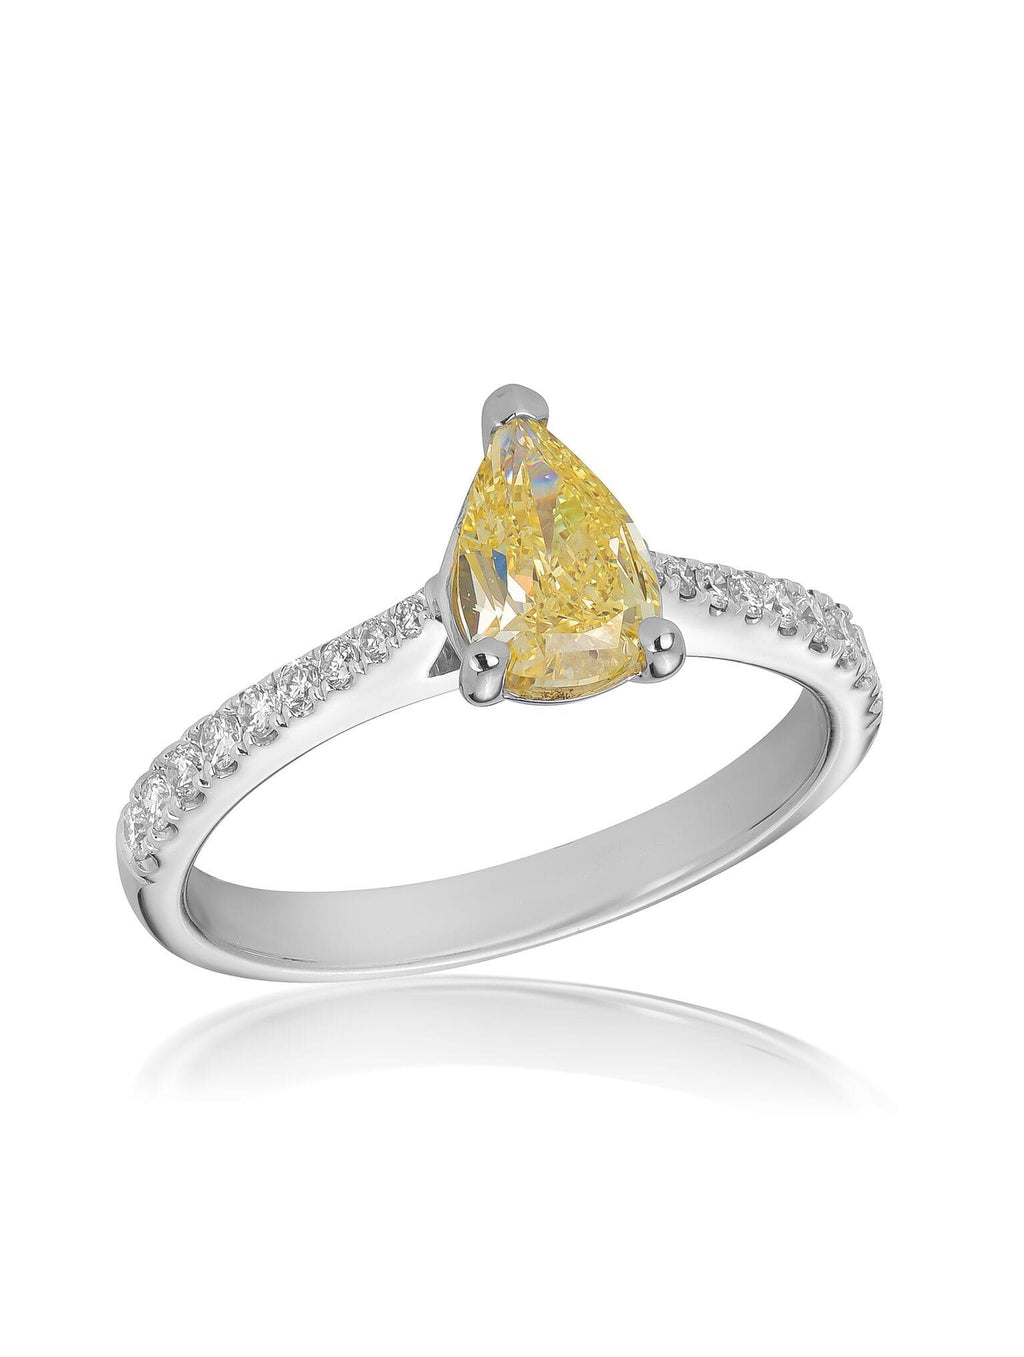 Signature Pear Cut Yellow Diamond Ring